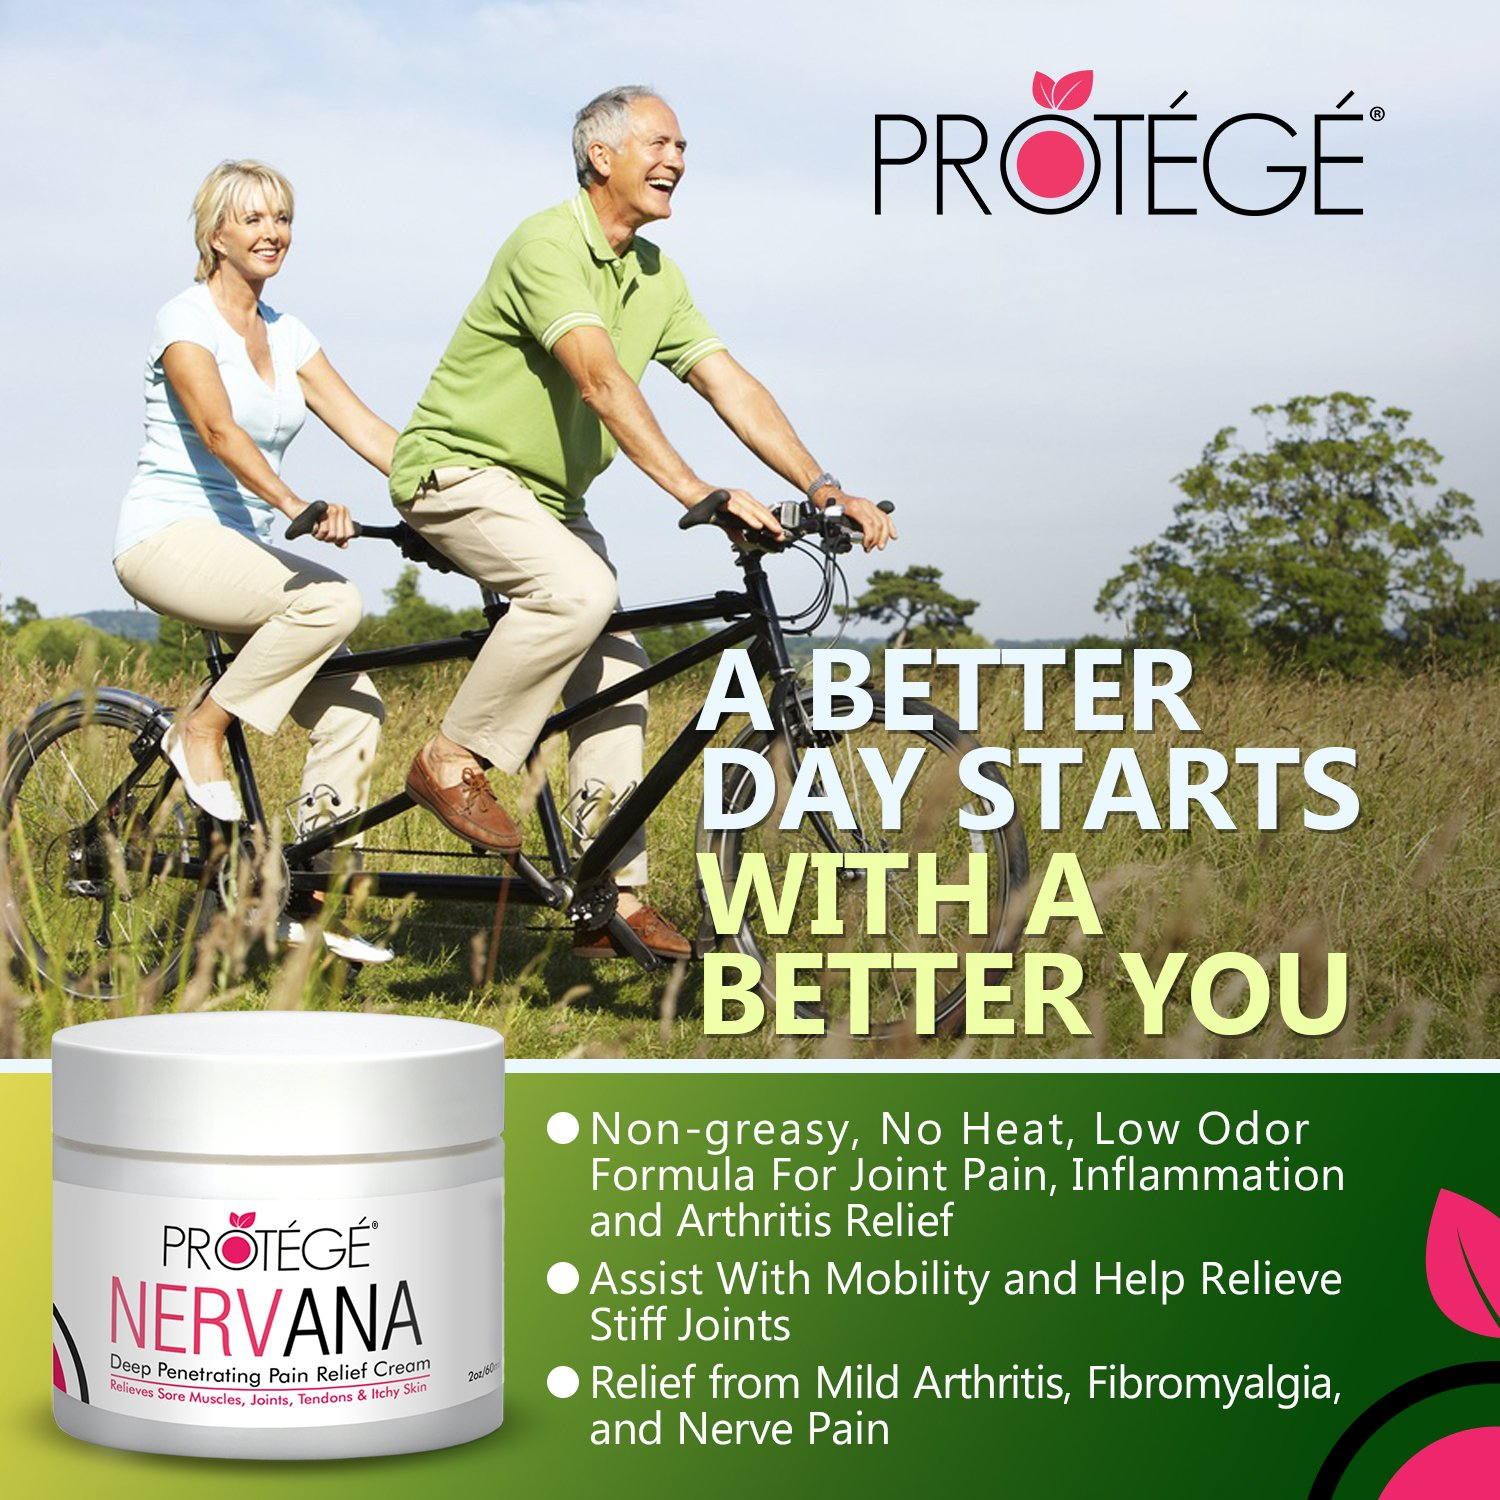 Premium Pain Relief Cream - NERVANA - Best Natural Anti-Inflammatory  Topical Pain Reliever Treatment